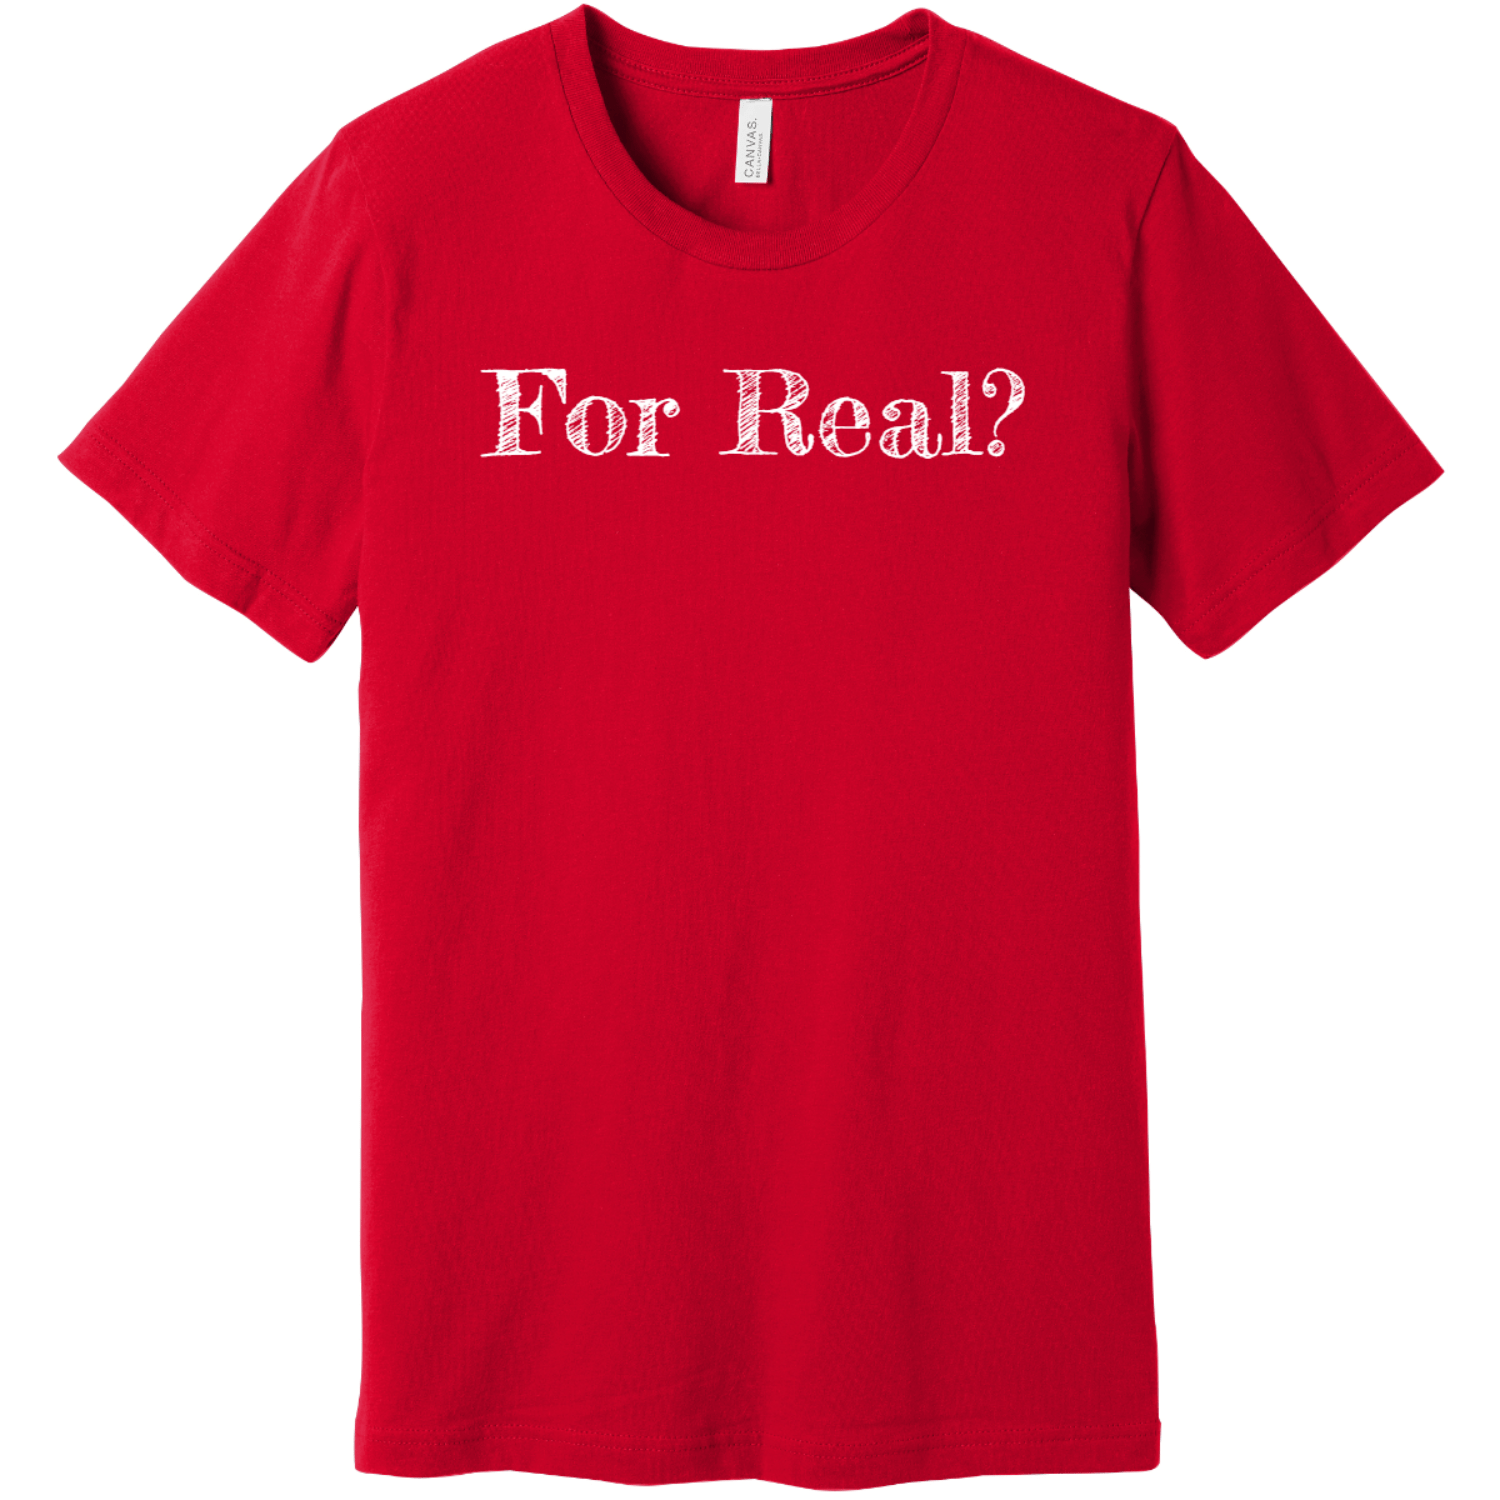 For Real T Shirt Red Bella Canvas Unisex Tee BC3001